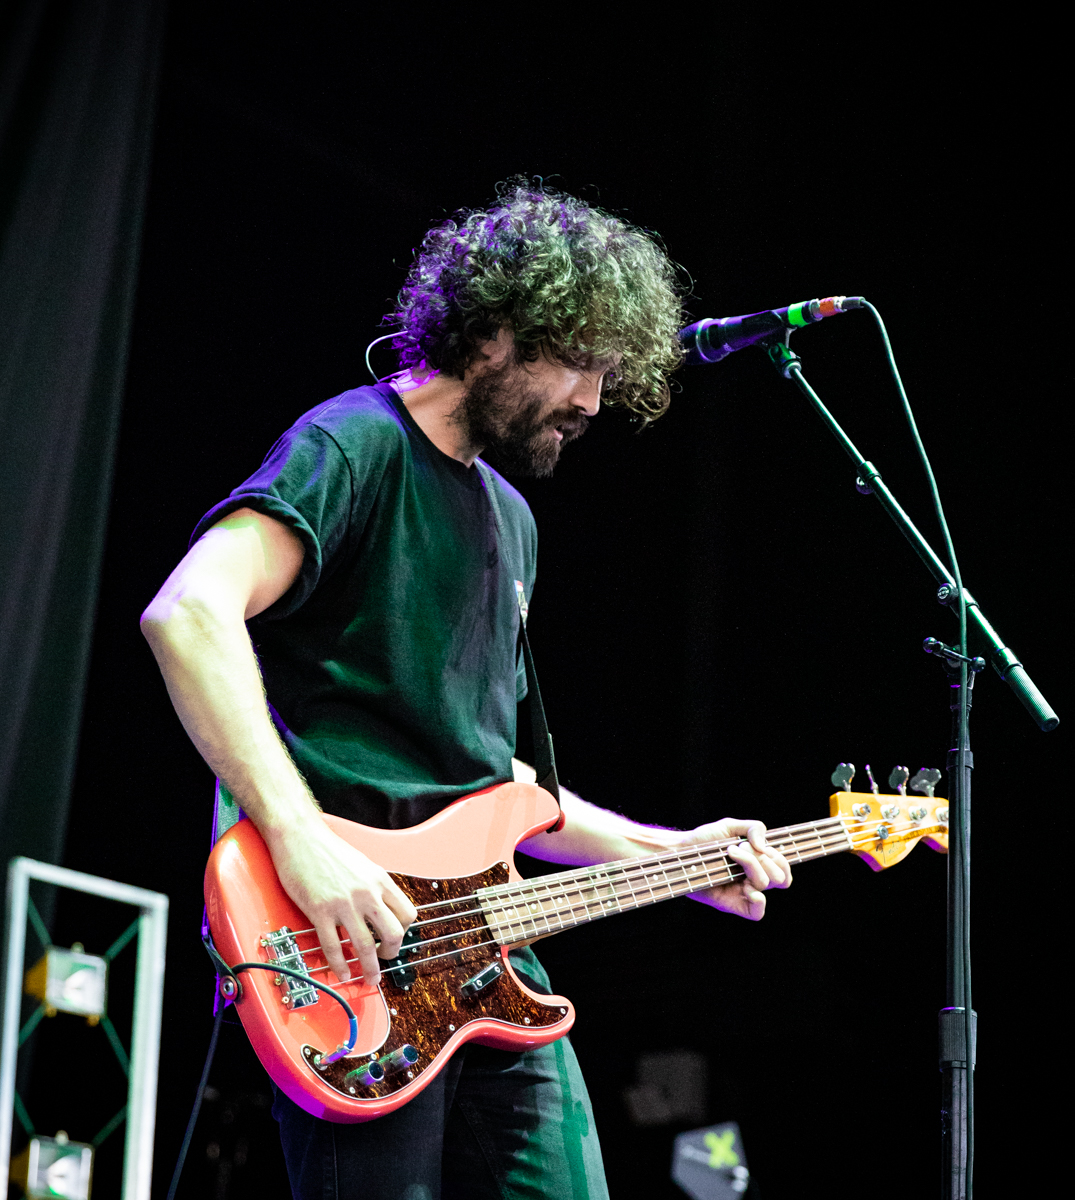 Jim Cratchley of Dinosaur Pile-Up performs at Hollywood Casino Amphitheatre in Tinley Park, IL on 07/14/2019.